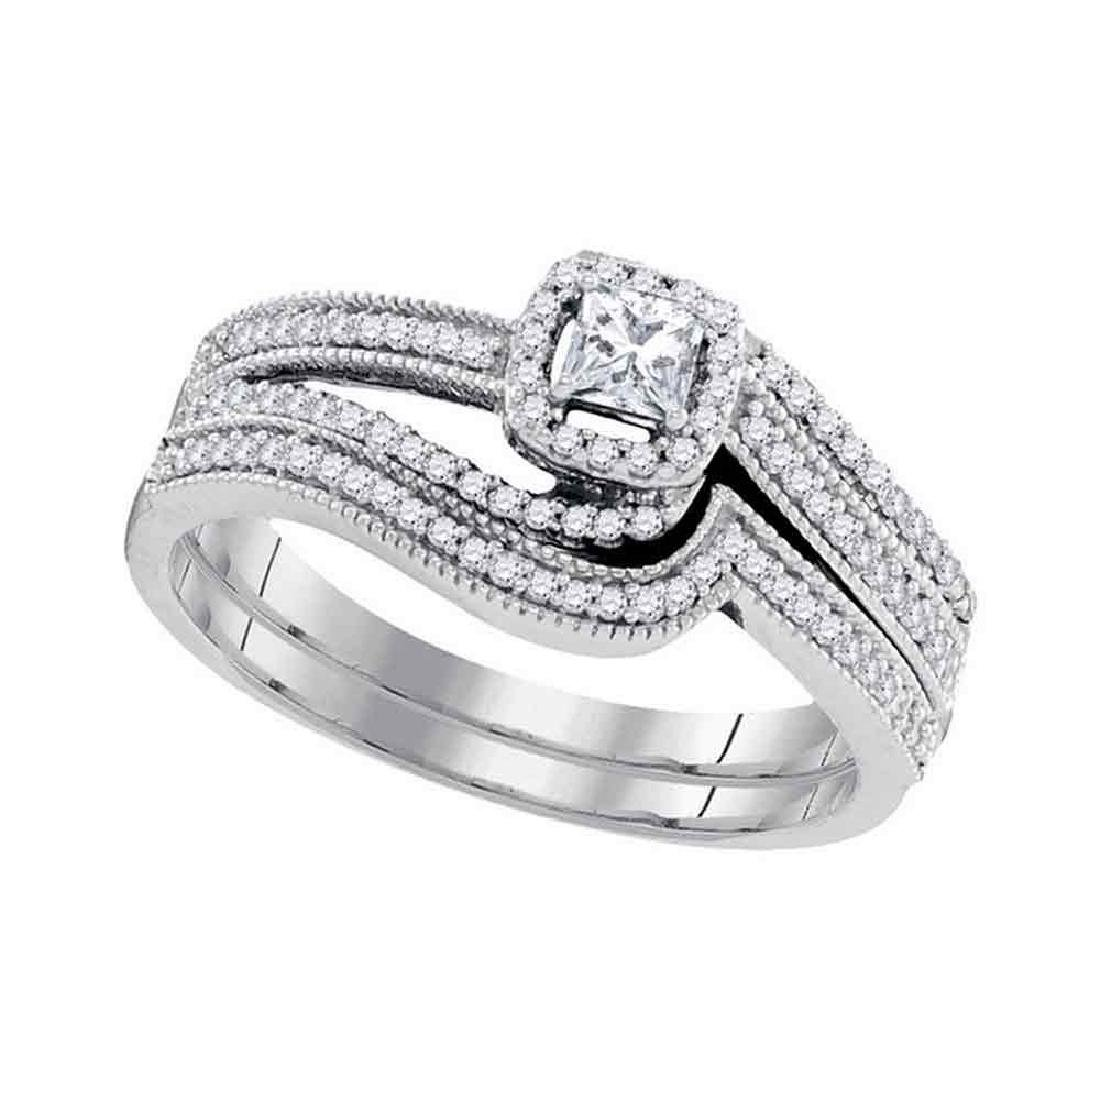 0.38 CTW Diamond Princess Bridal Engagement Ring 10KT